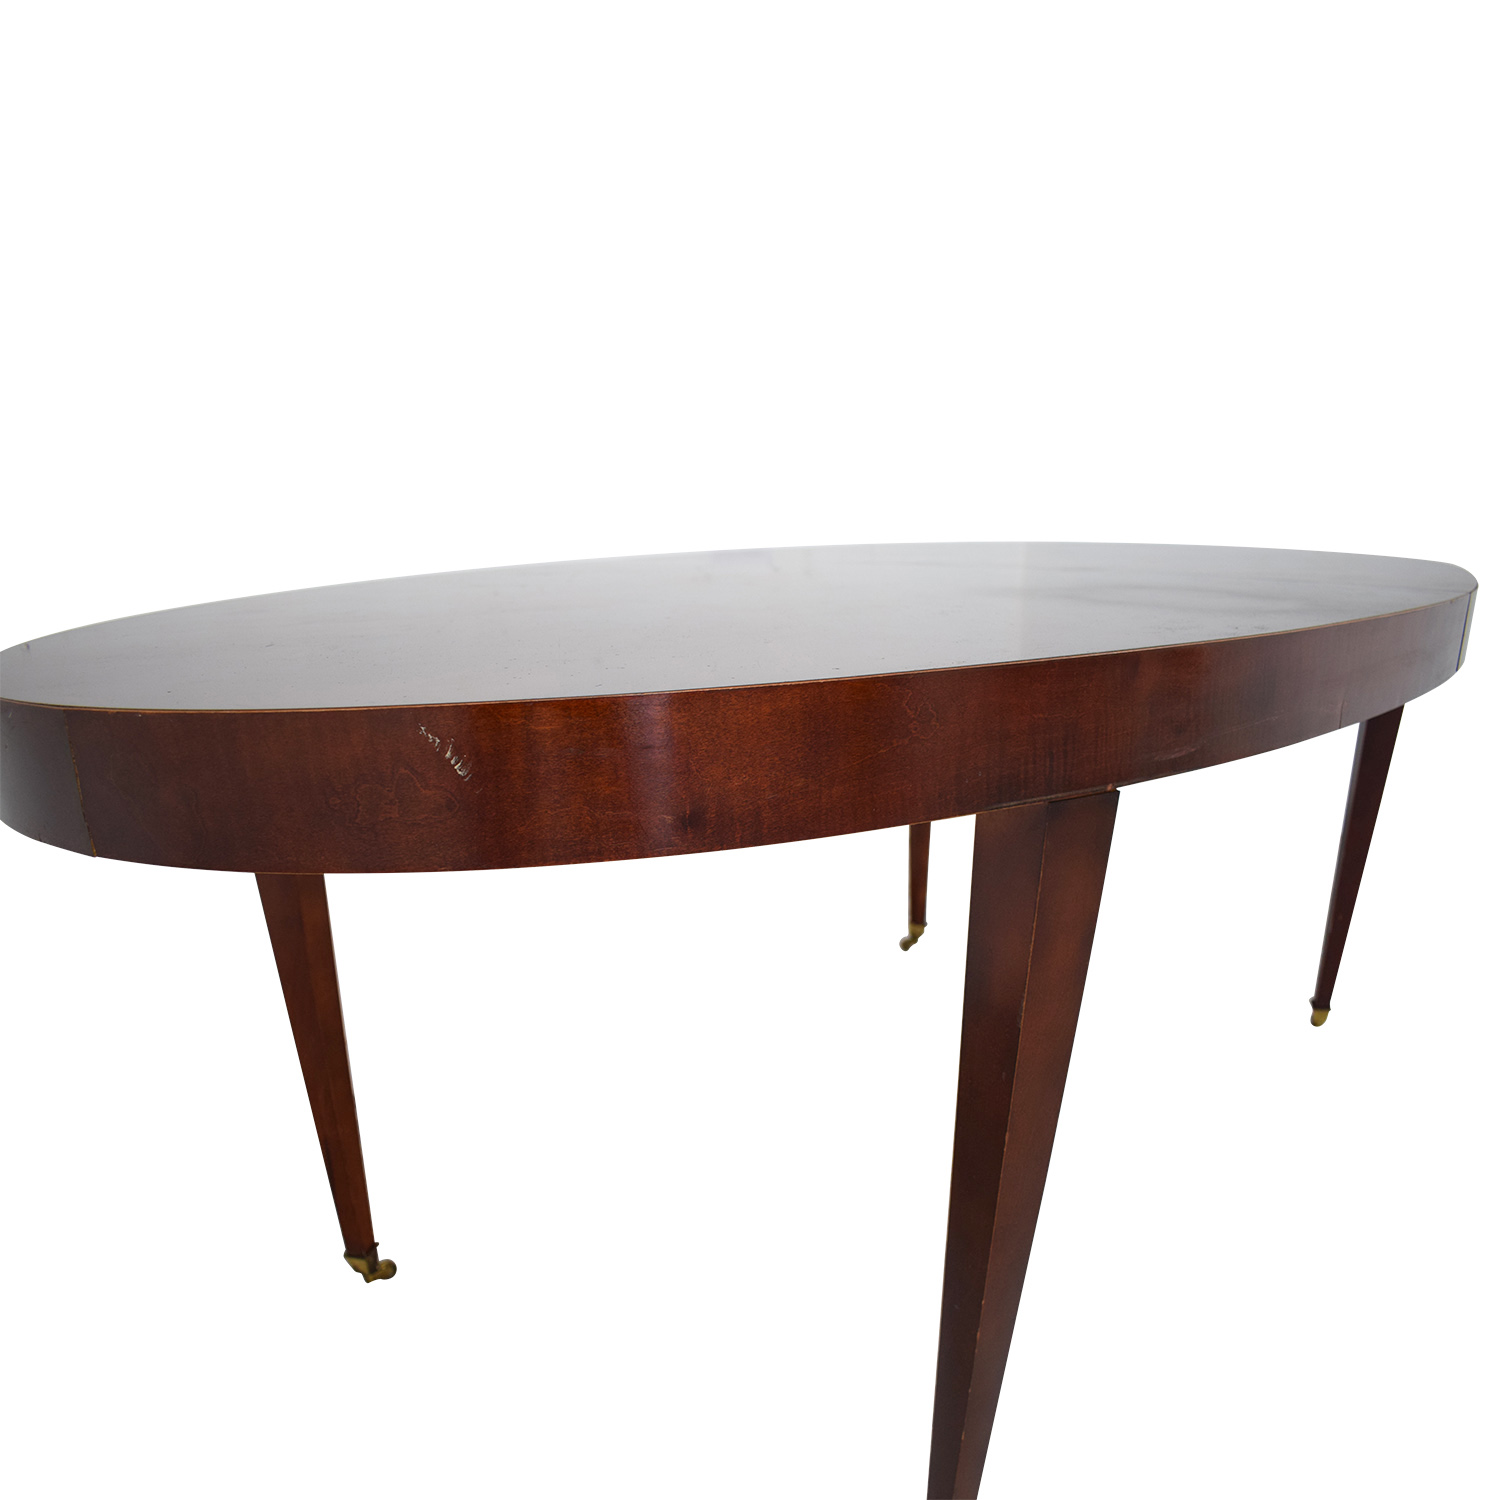 Baker Furniture Archetype Dining Table / Tables